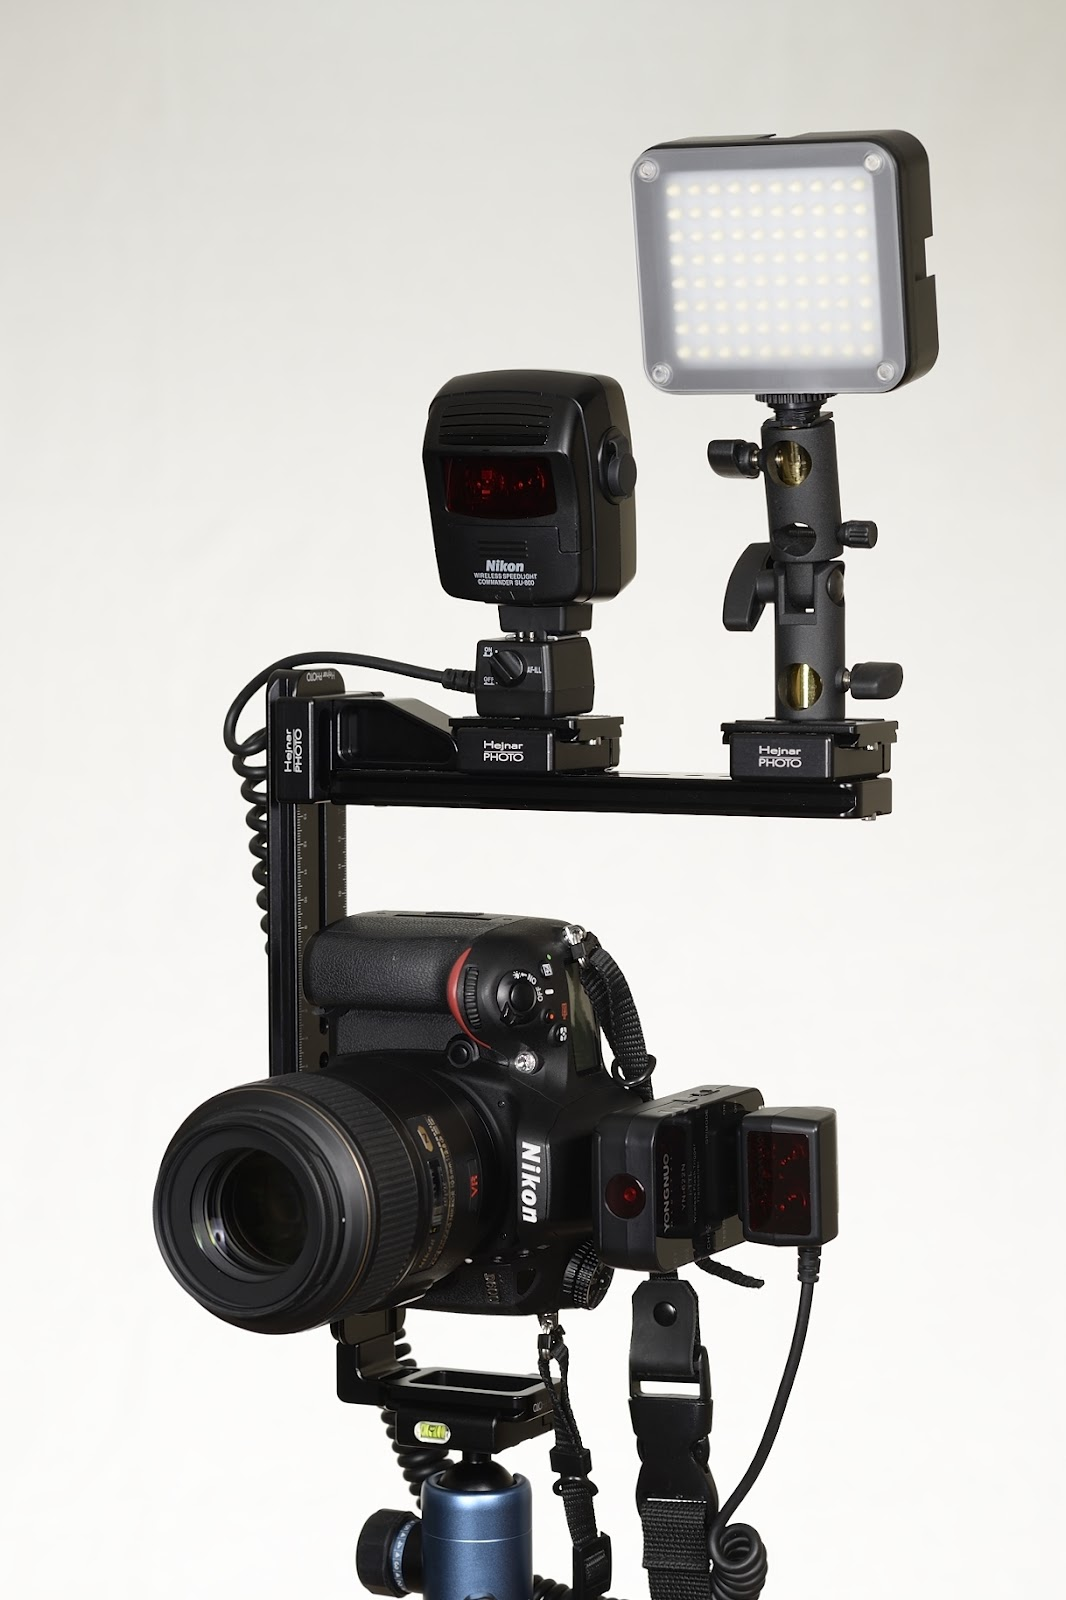 Hejnar Photo Modular Flash Bracket front view